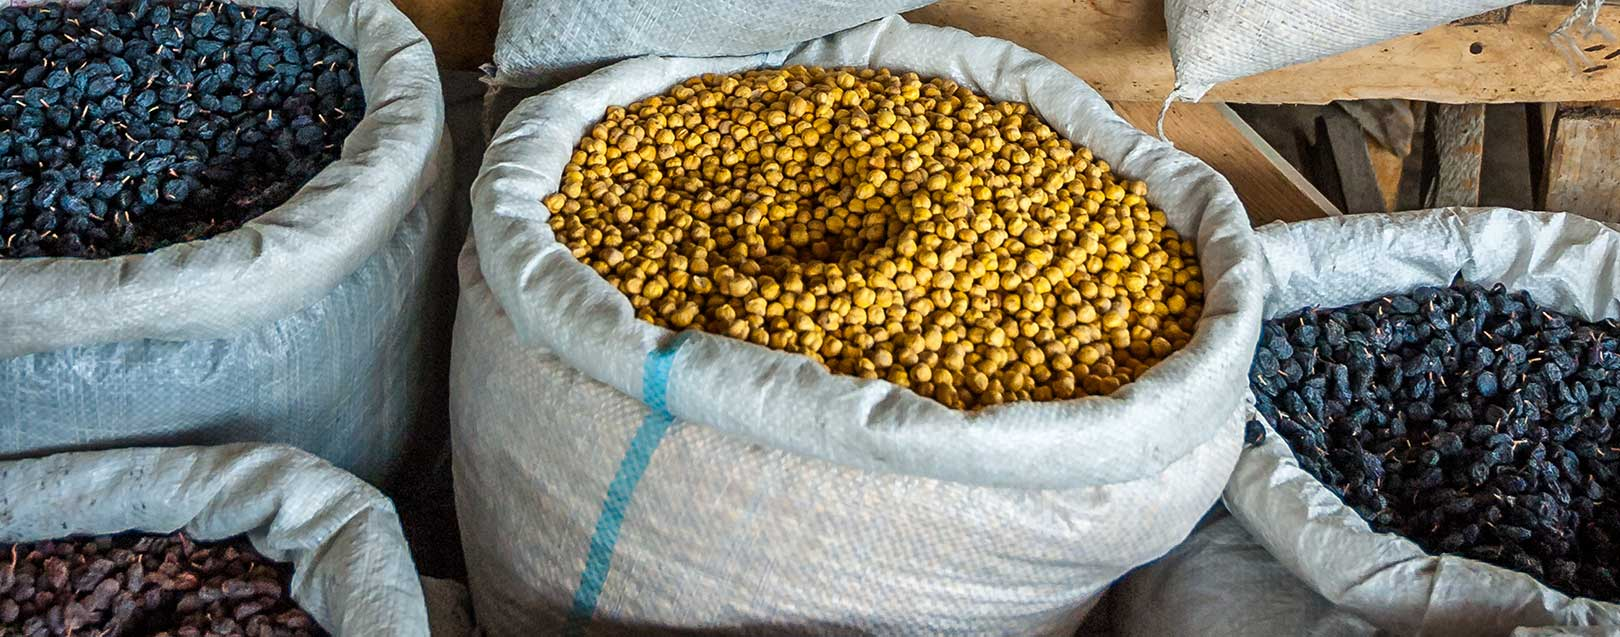 Prices of pulses not to cross Rs.120/kg: Paswan